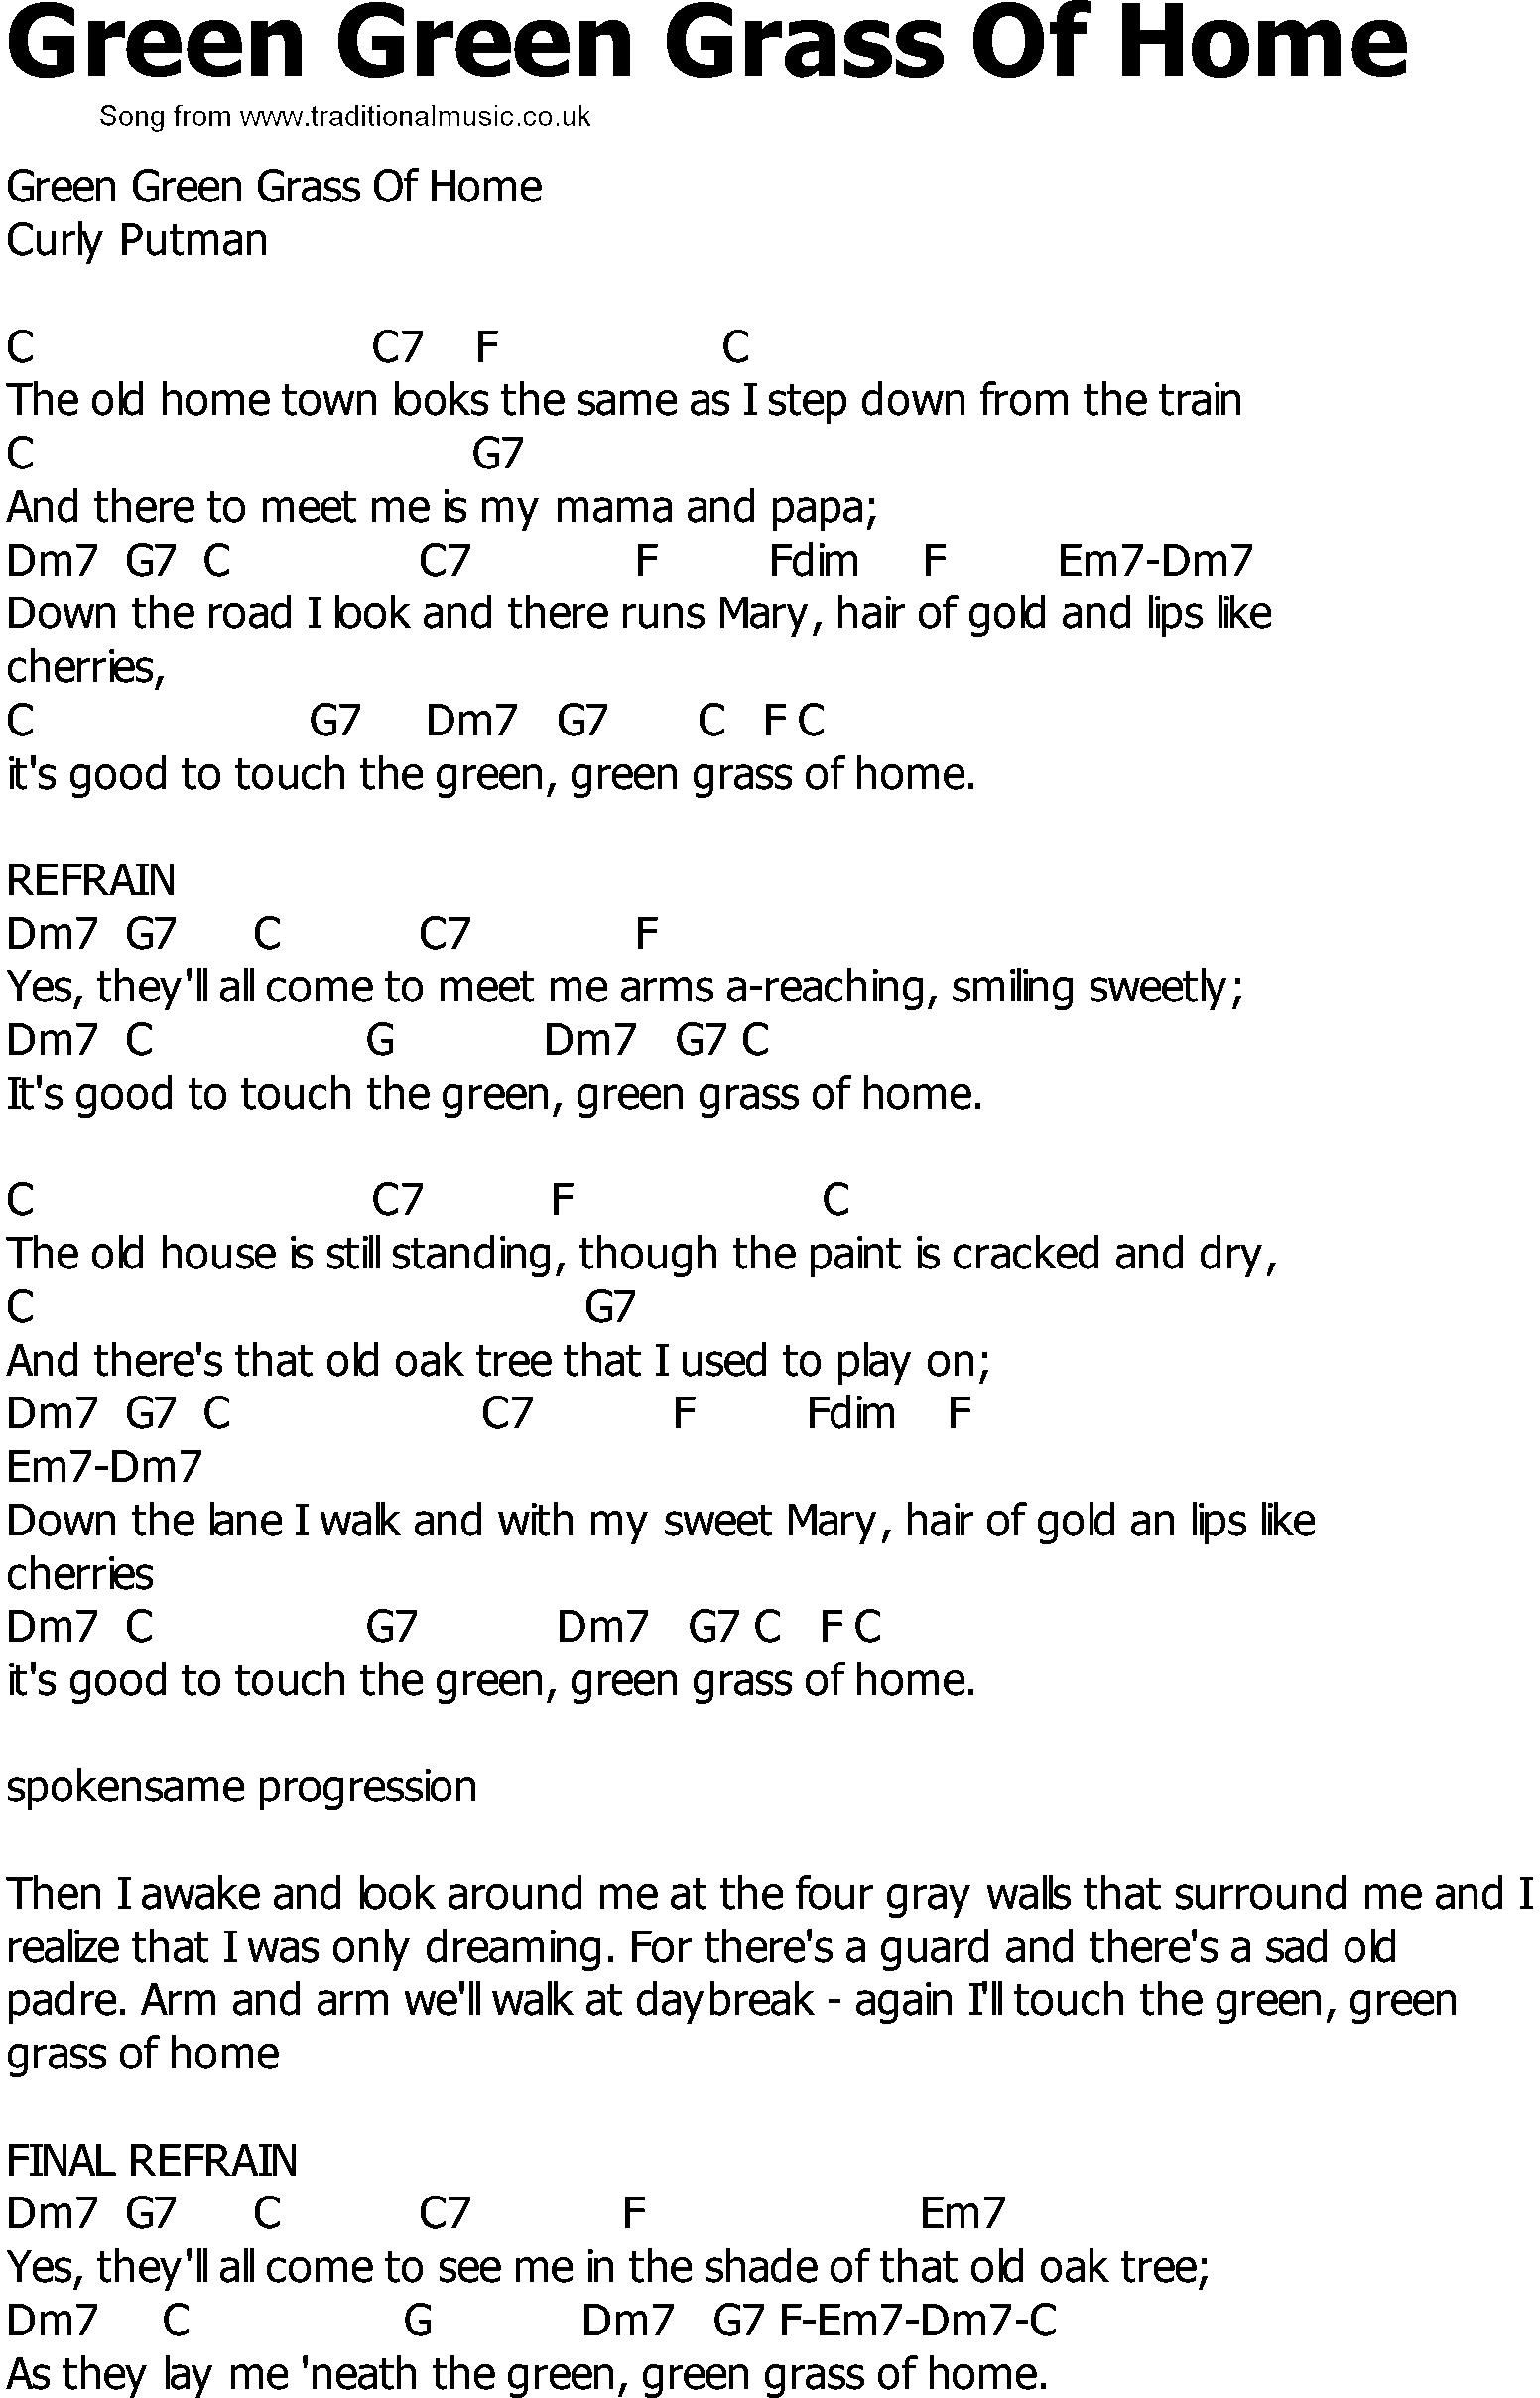 Old Country song lyrics with chords - Green Green Grass Of ...